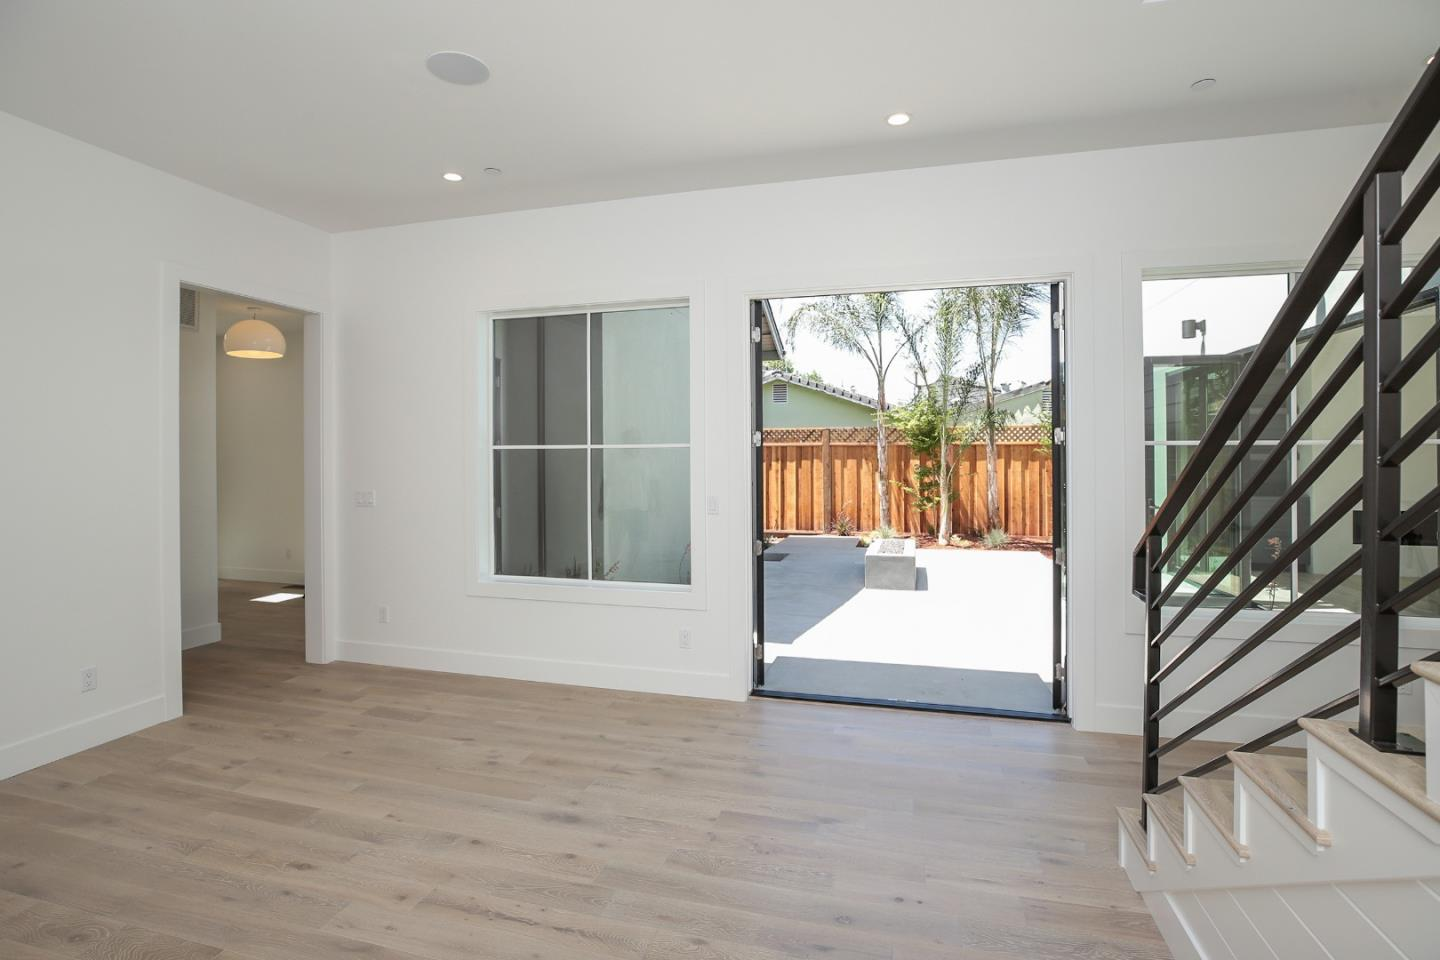 MLS#81637543 $2,299,000 www.dorisvela.com 1890 Johnston AVE, San ...